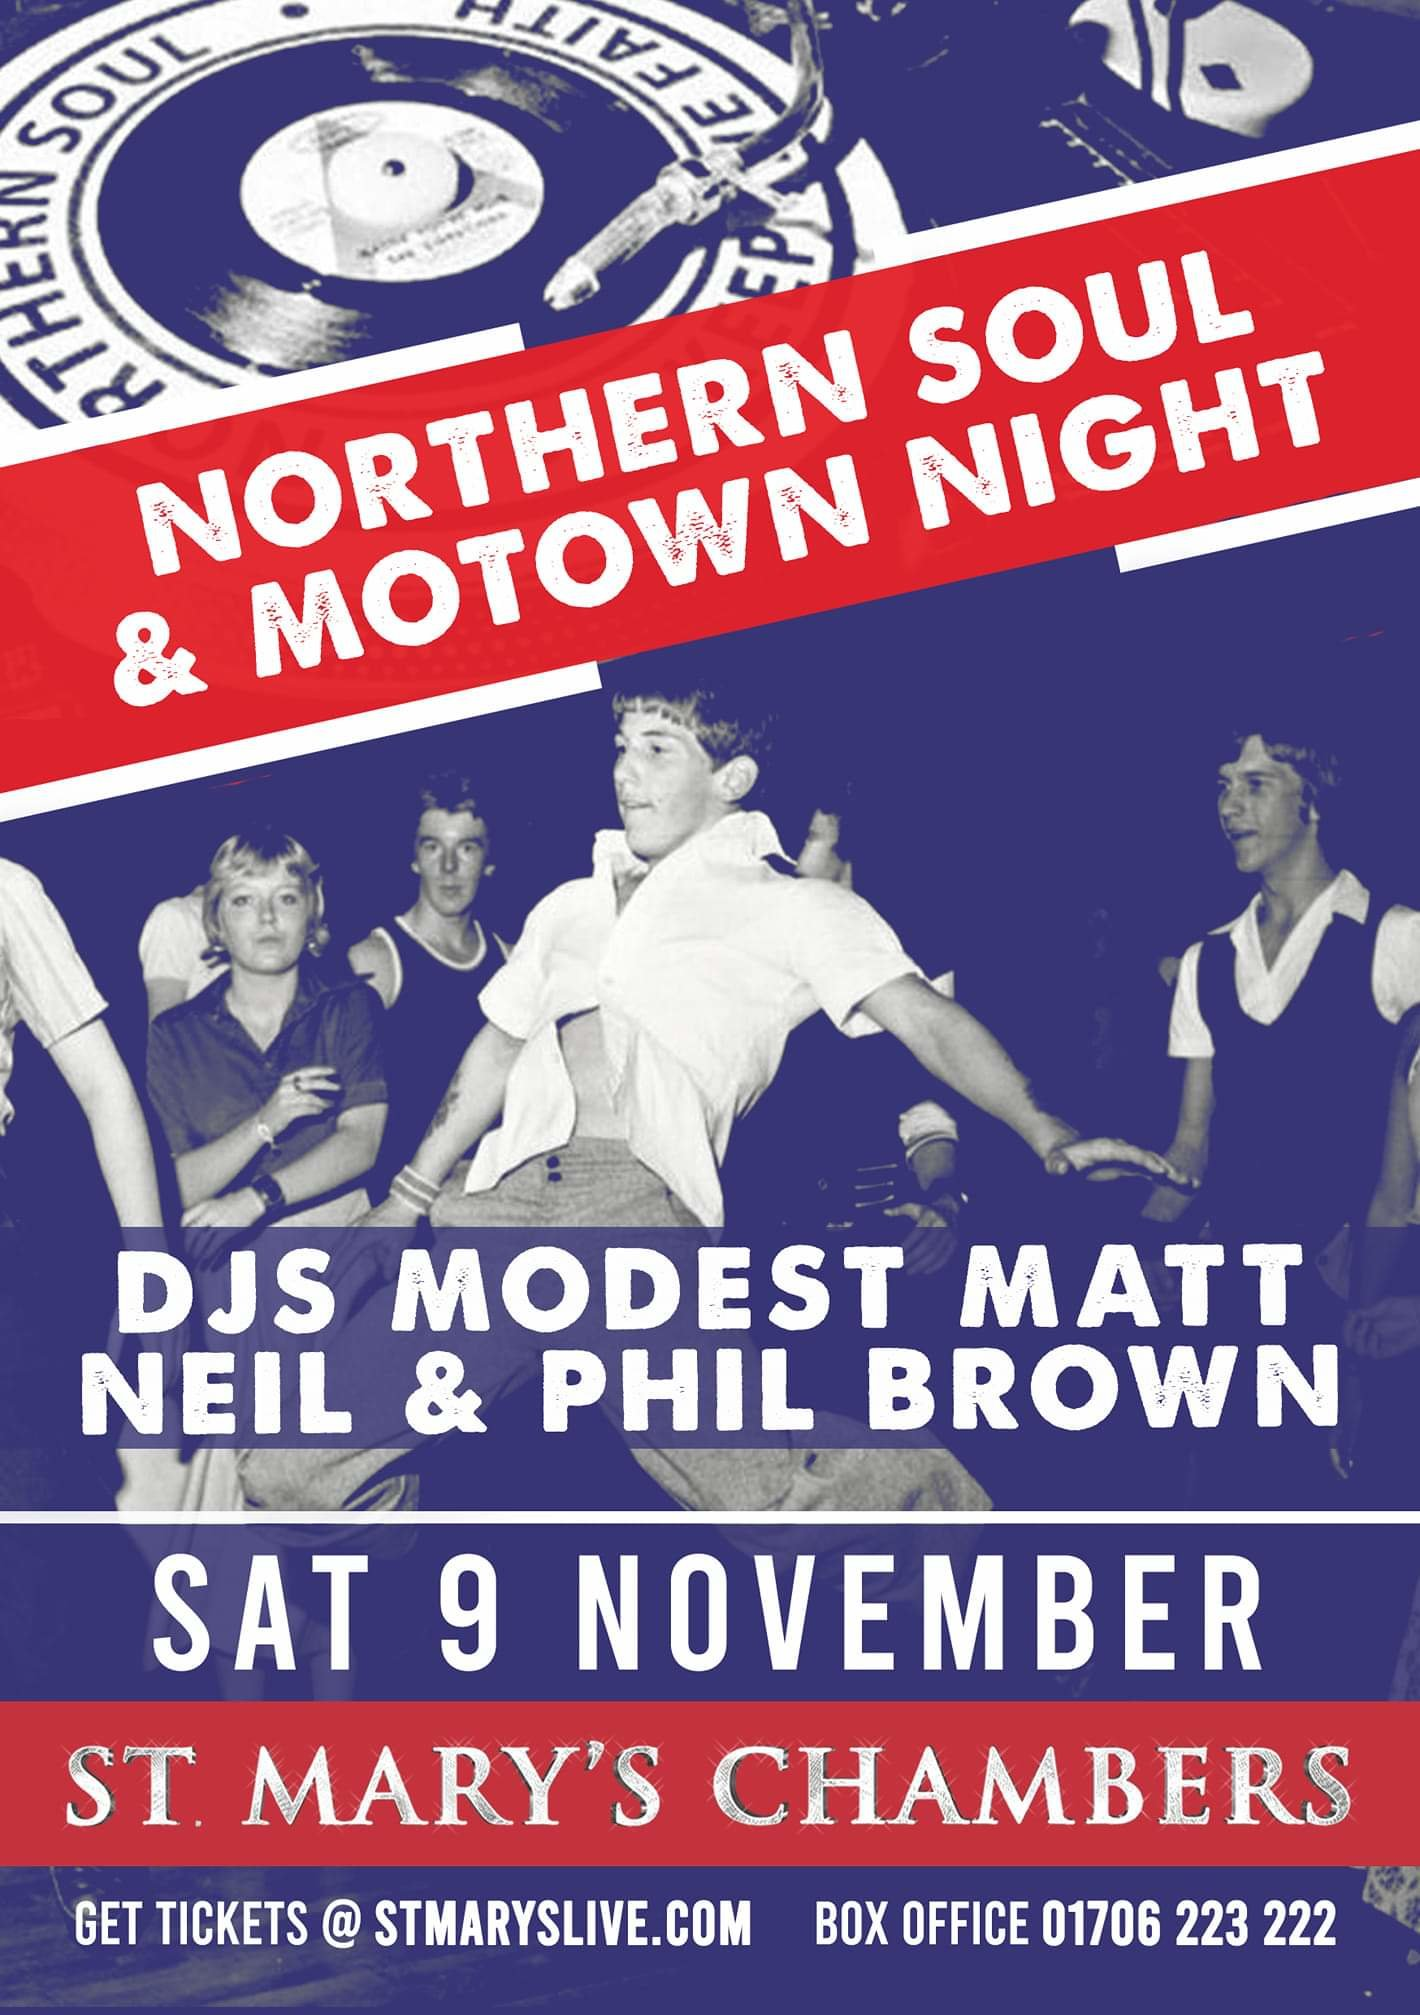 Northern Soul  Motown  New Night In A Fantastic Venue flyer